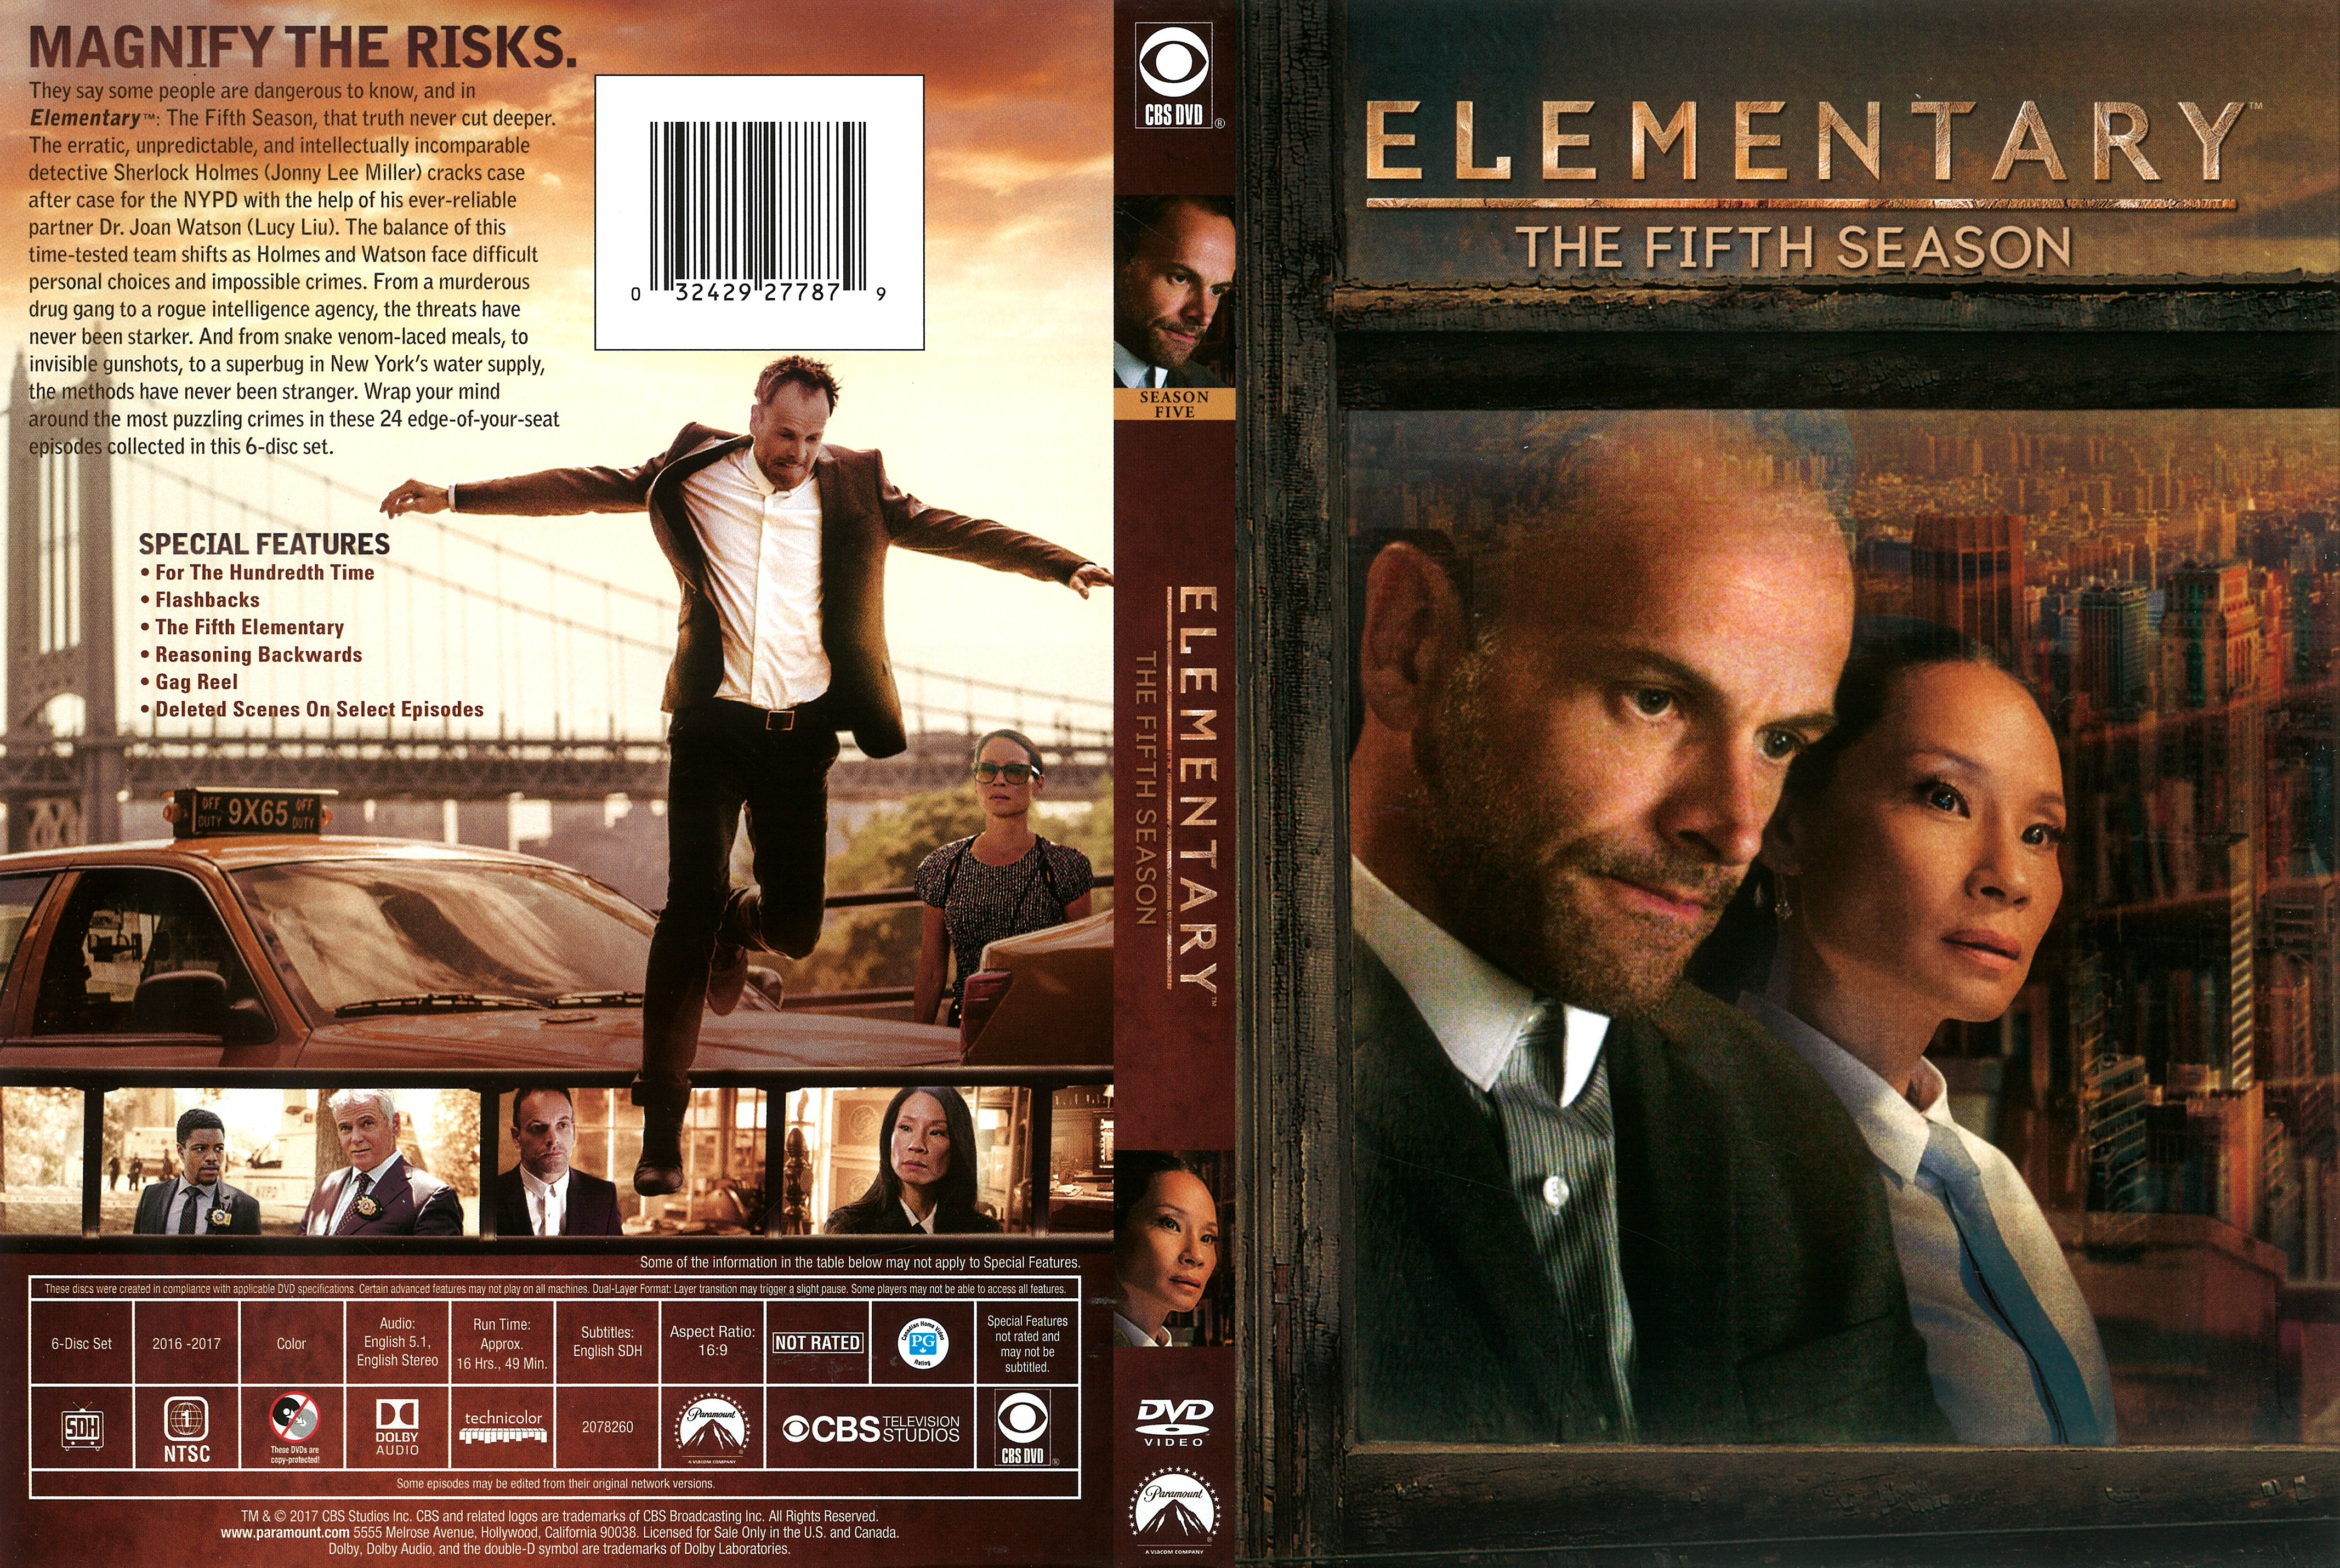 S5 DVD Cover